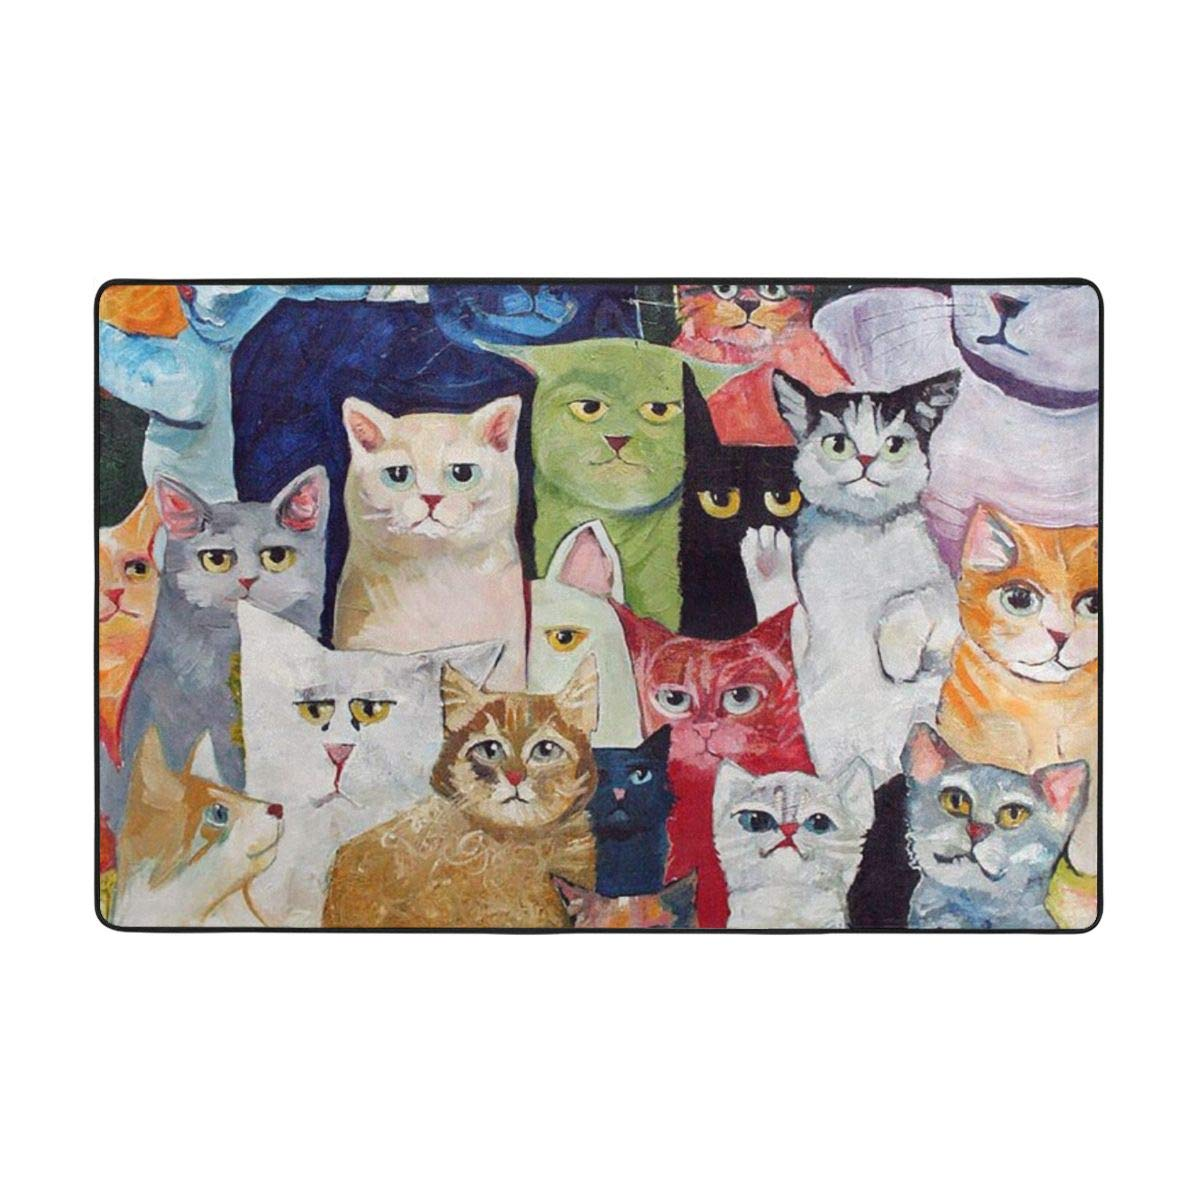 Not Ball Fine Down Durable Not Fade,Non-Slip Many Cat Carpet 60 X 39 in,Soft to Touch